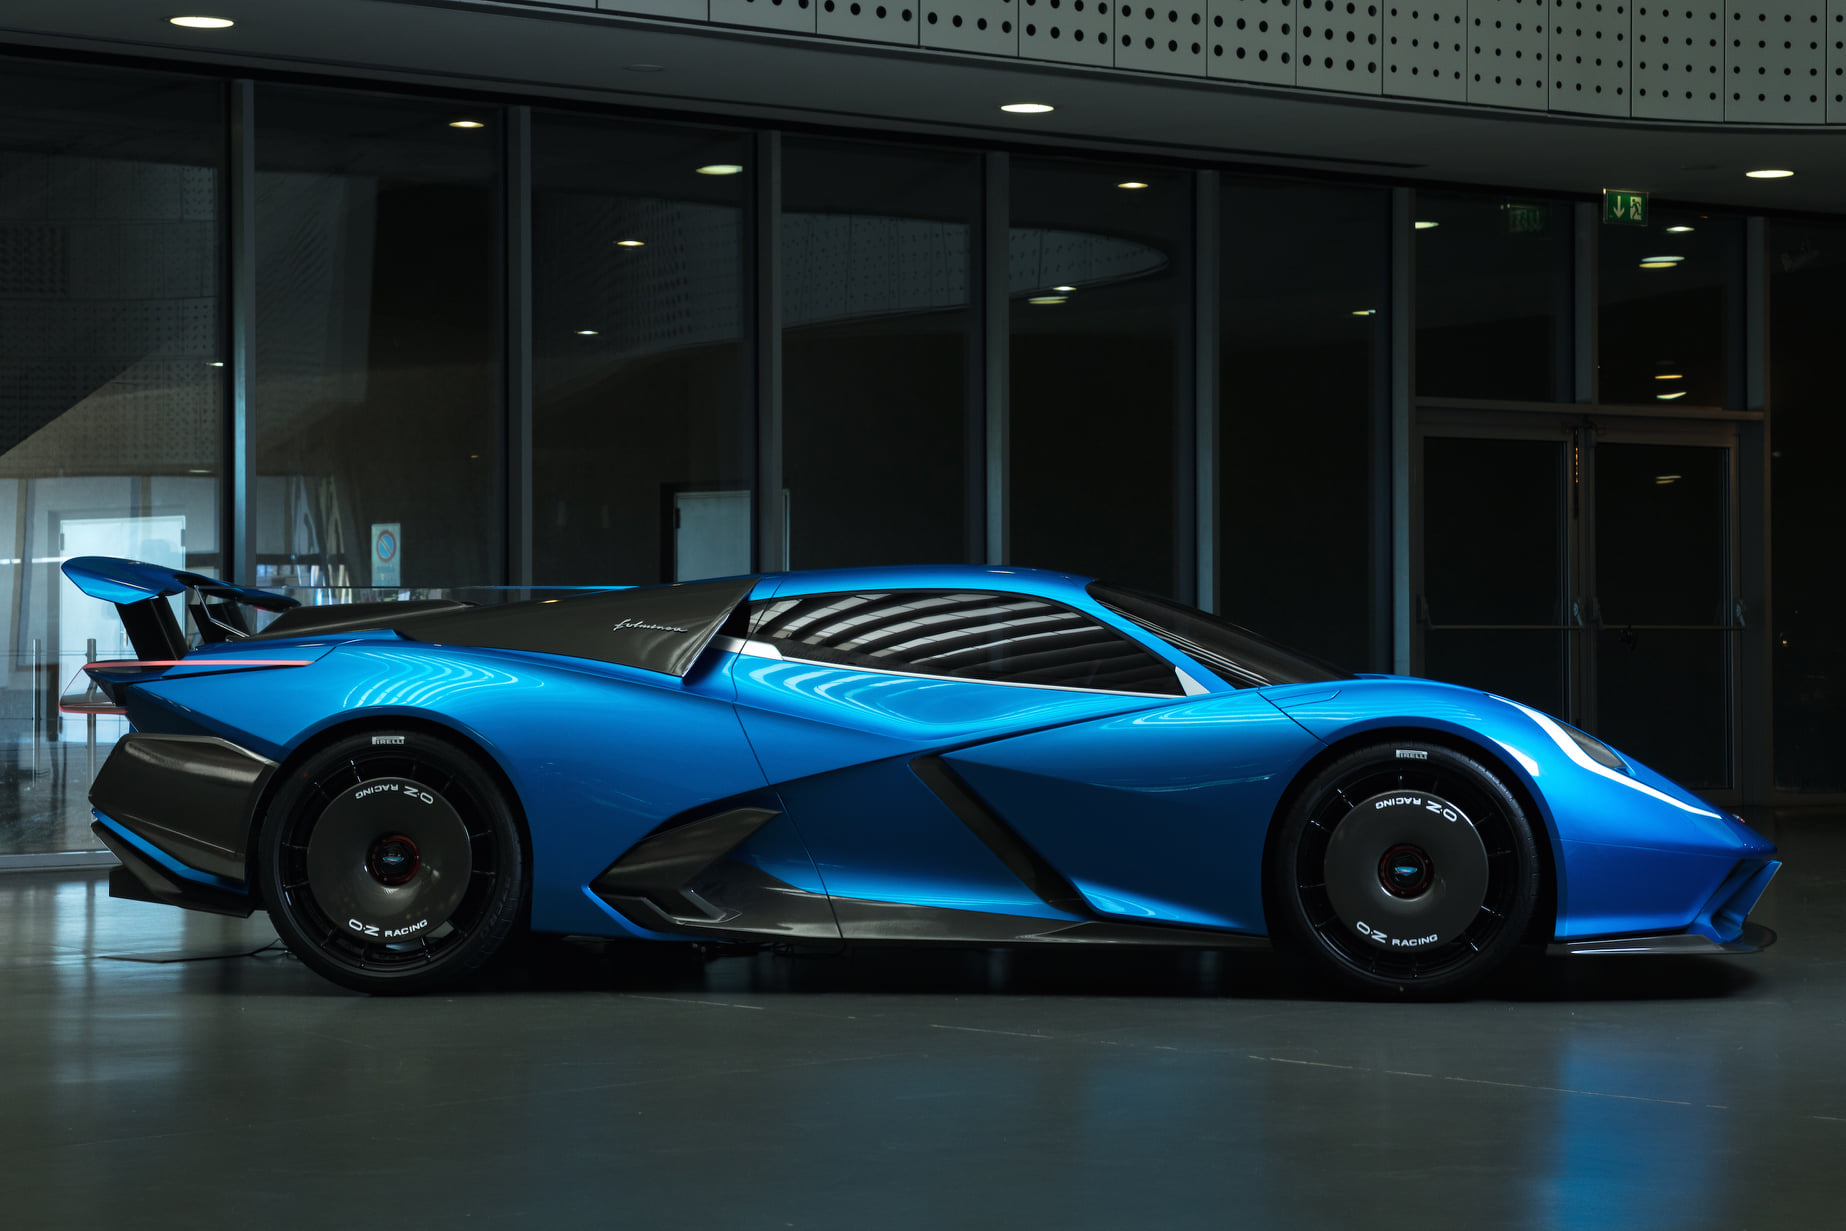 The Fulminea will be Automobili Estrema's first car, and while it may well debut as the most powerful car in the world, it's the battery that's got us interested